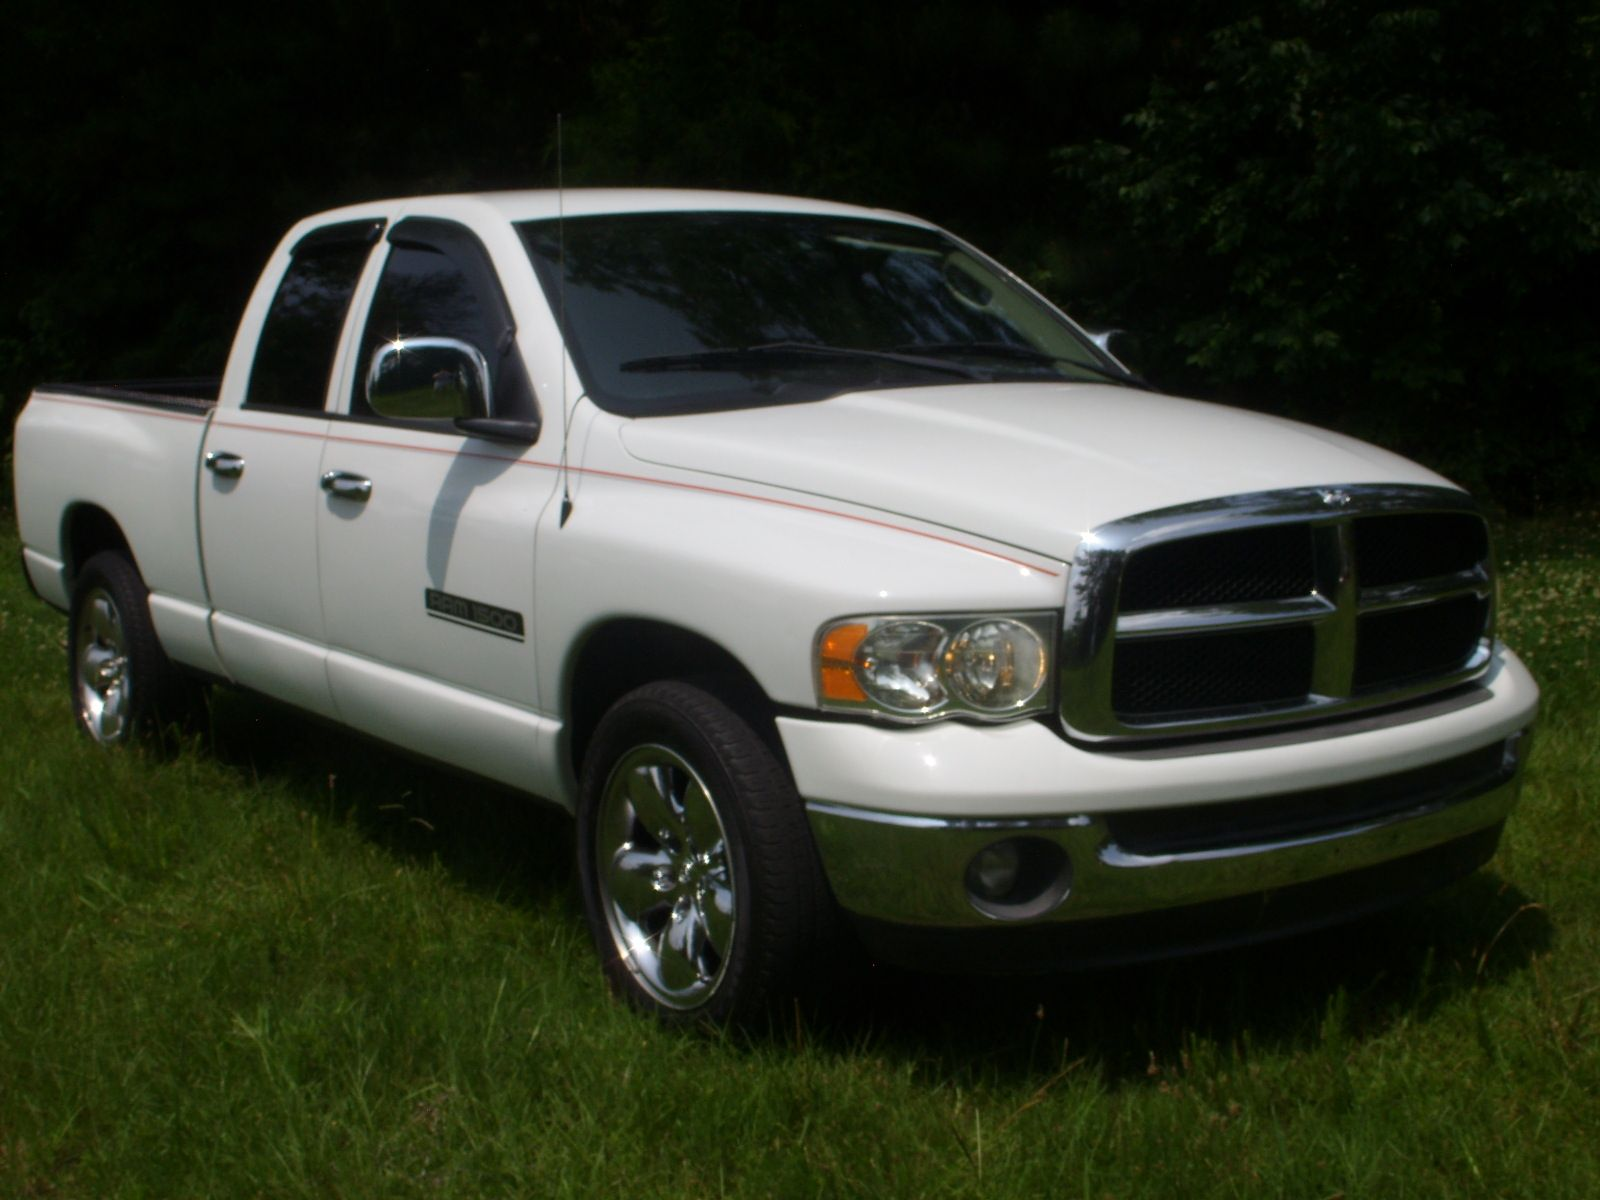 One super nice looking Ram1500 Crew Cab! Fully serviced